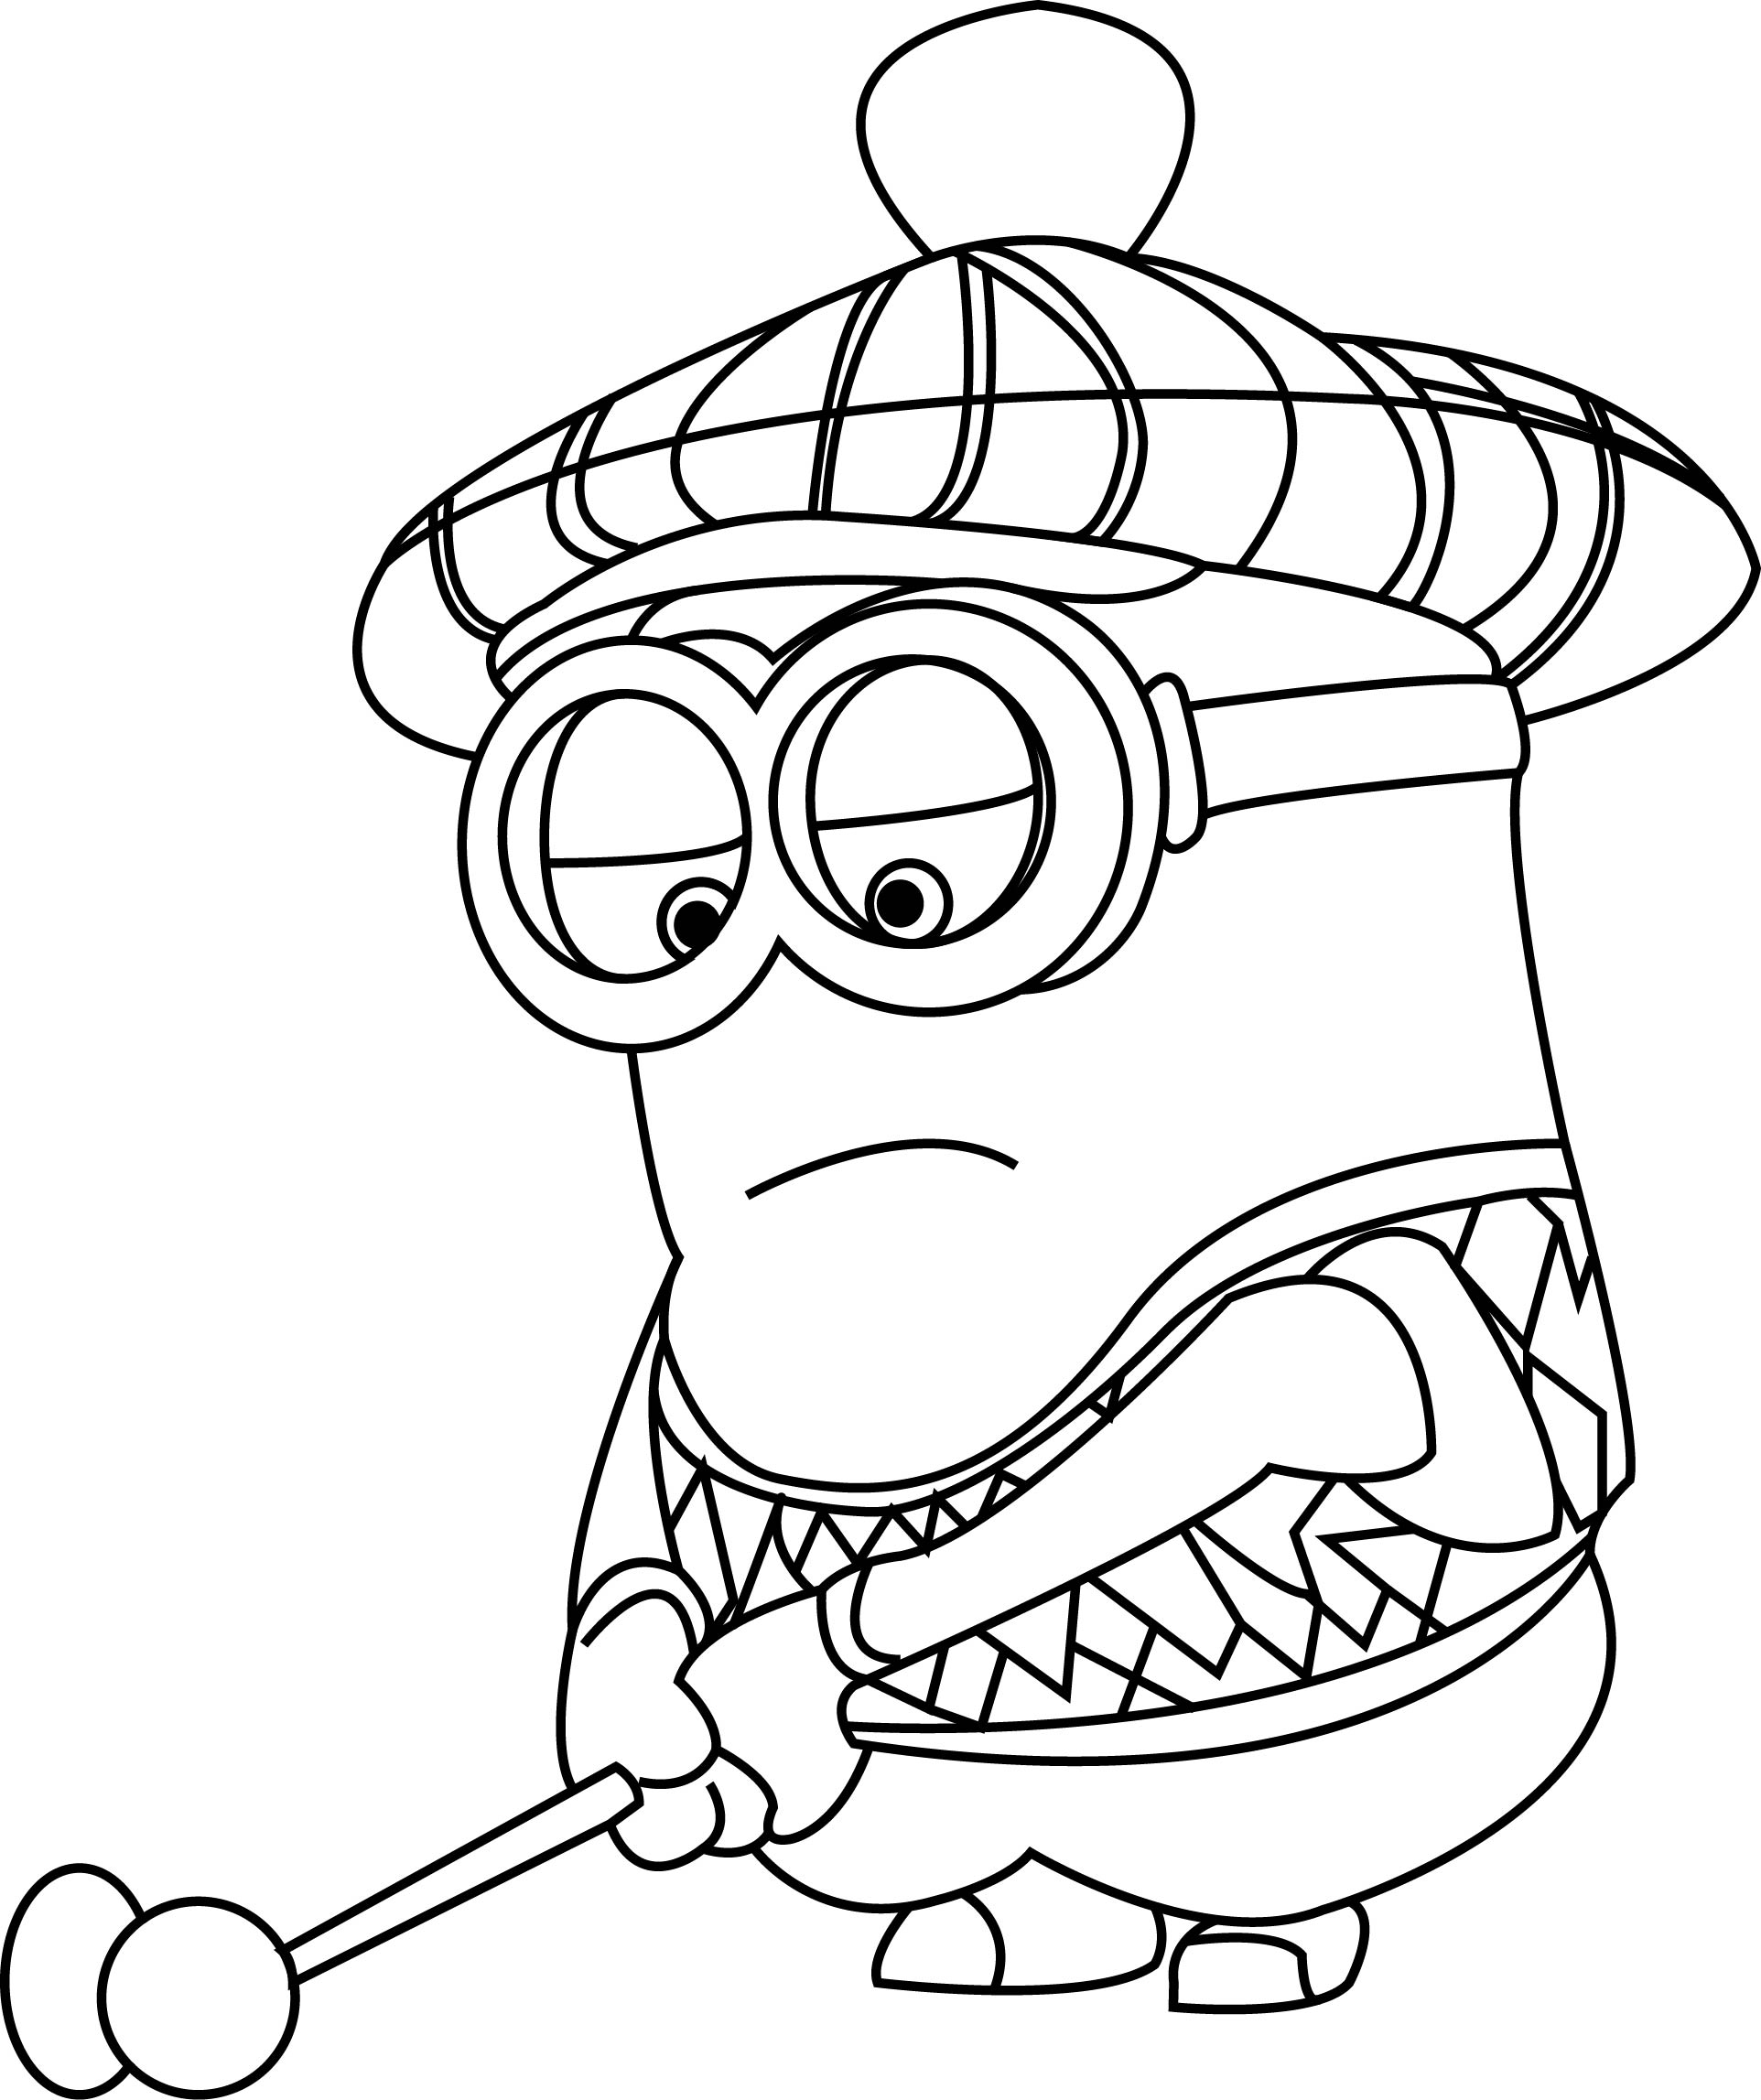 despicable me coloring pages get this despicable me coloring pages to print 27bg0 pages me despicable coloring